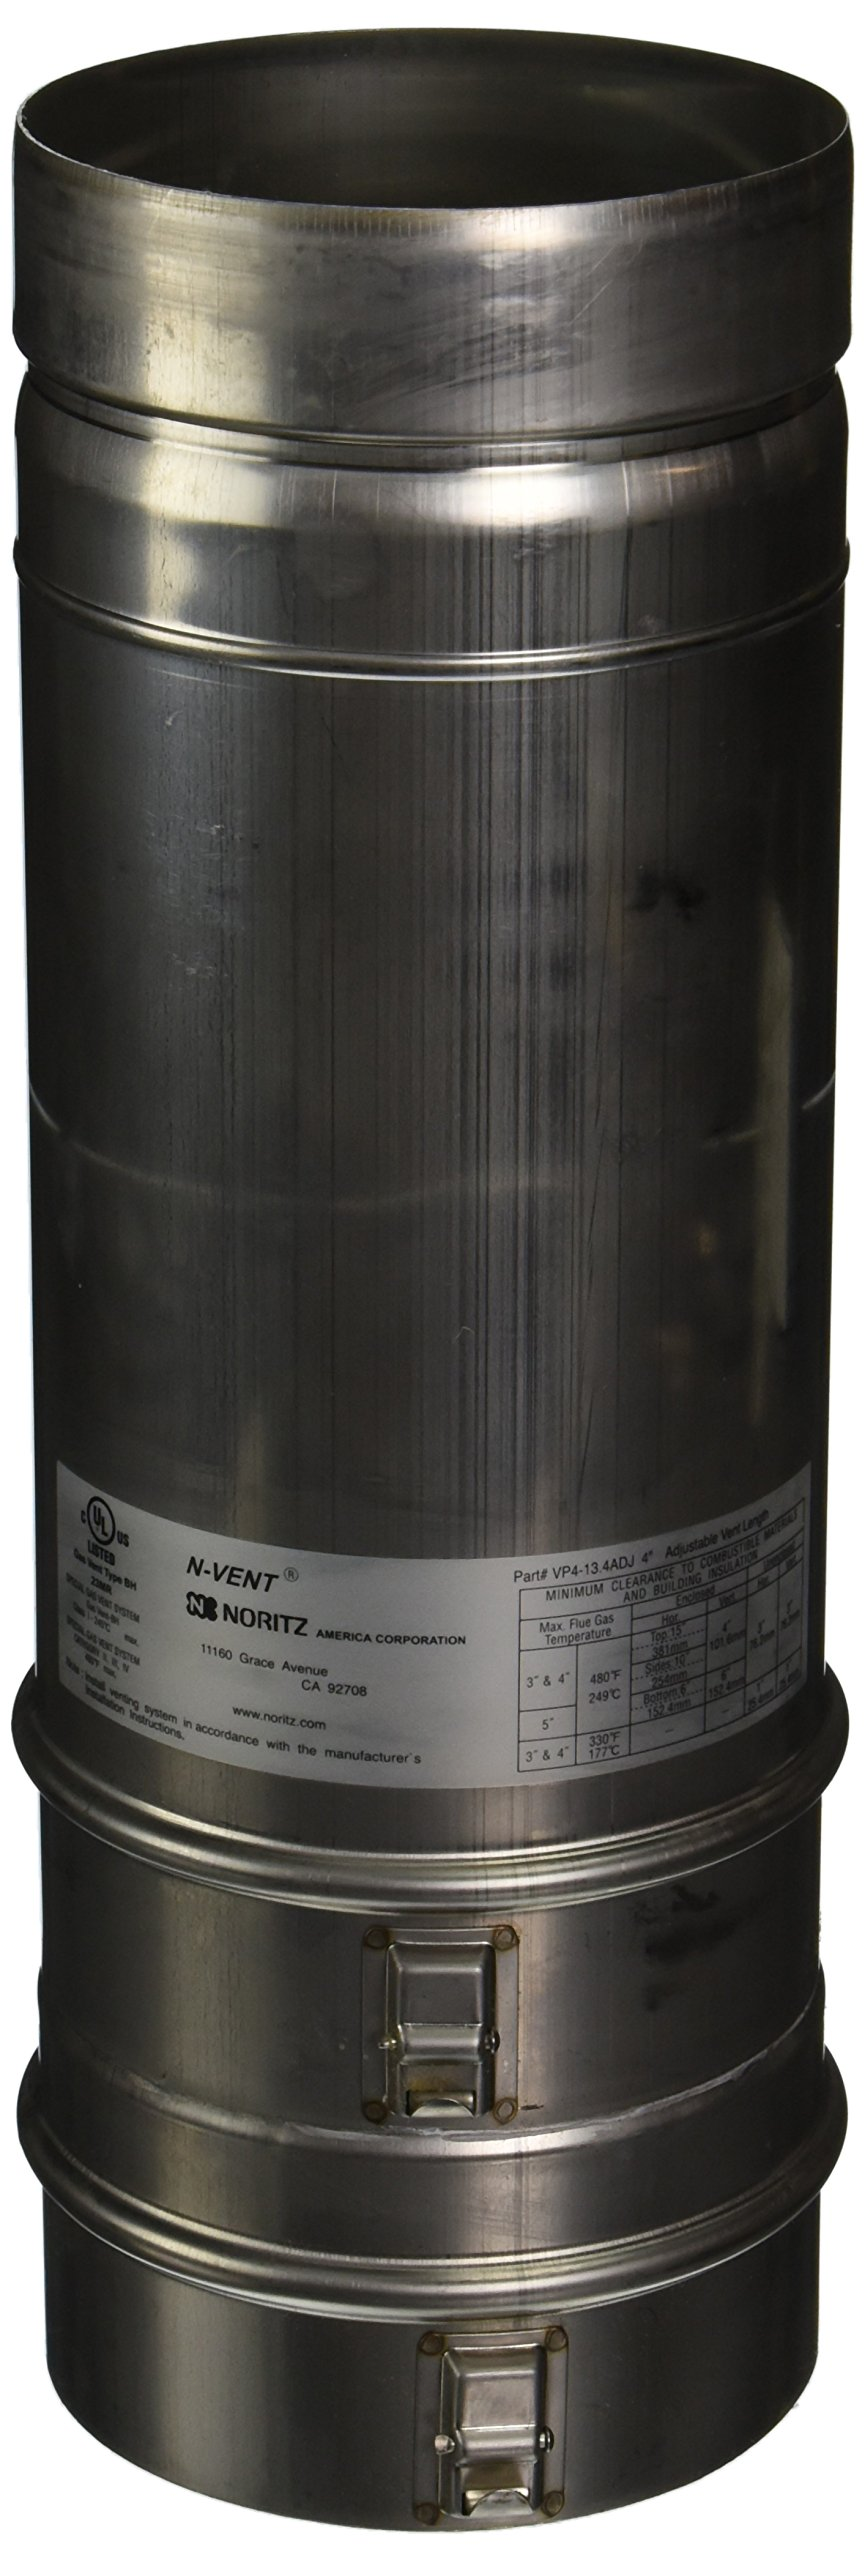 Noritz VP4-13.4ADJUST 4-Inch Diameter by 13.4-Inch Adjustable Straight Stainless Steel Single Wall Venting